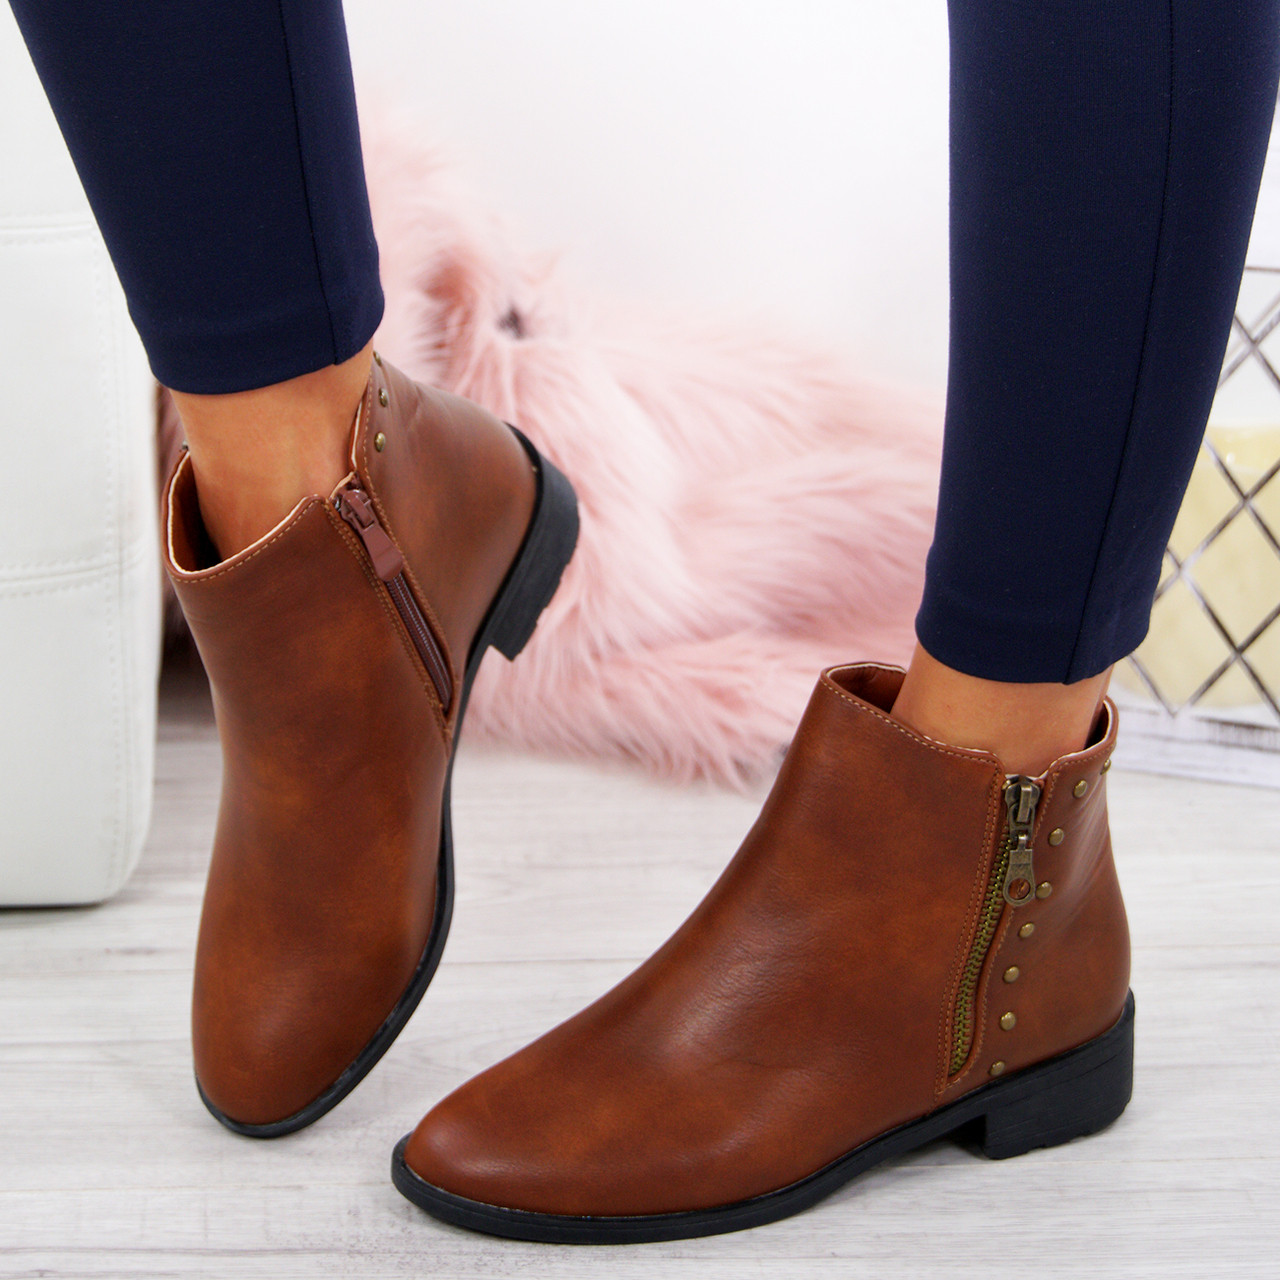 5ed153cc0f9d9 Ladies Ankle Studded Boots Womens Low Block Heel Zip Fastening Winter Shoes  Size